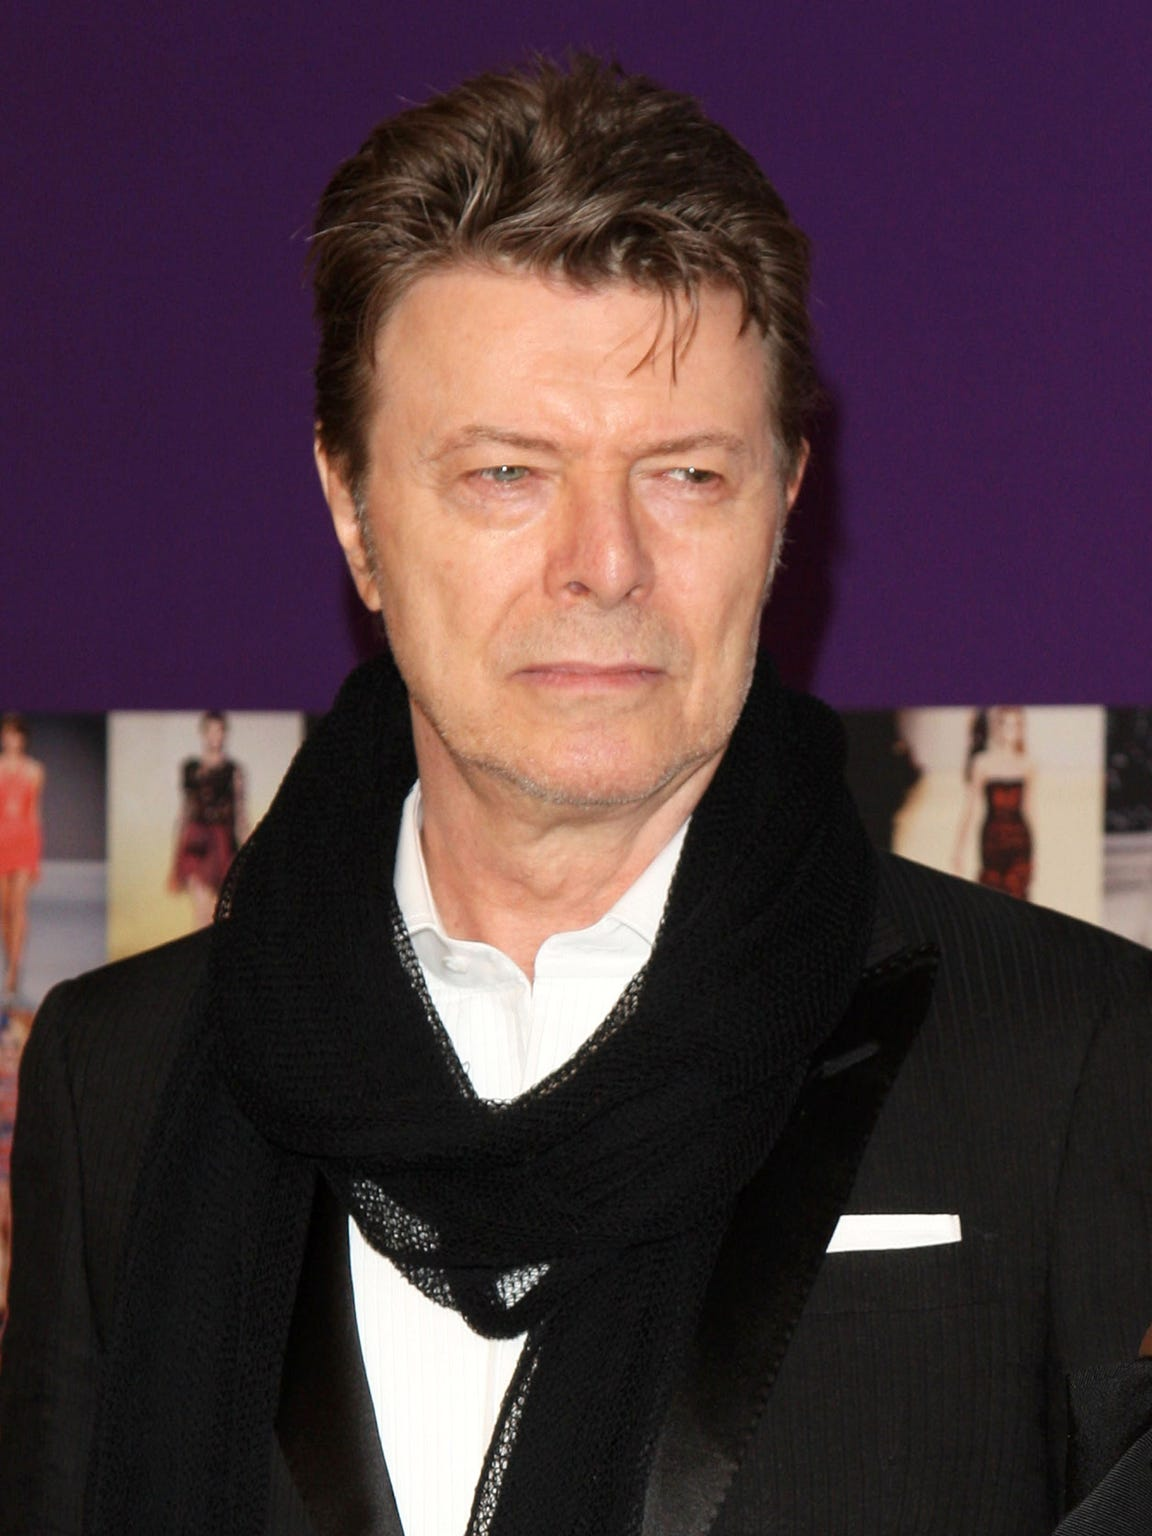 David Bowie, shown in this 2010 file photo died in